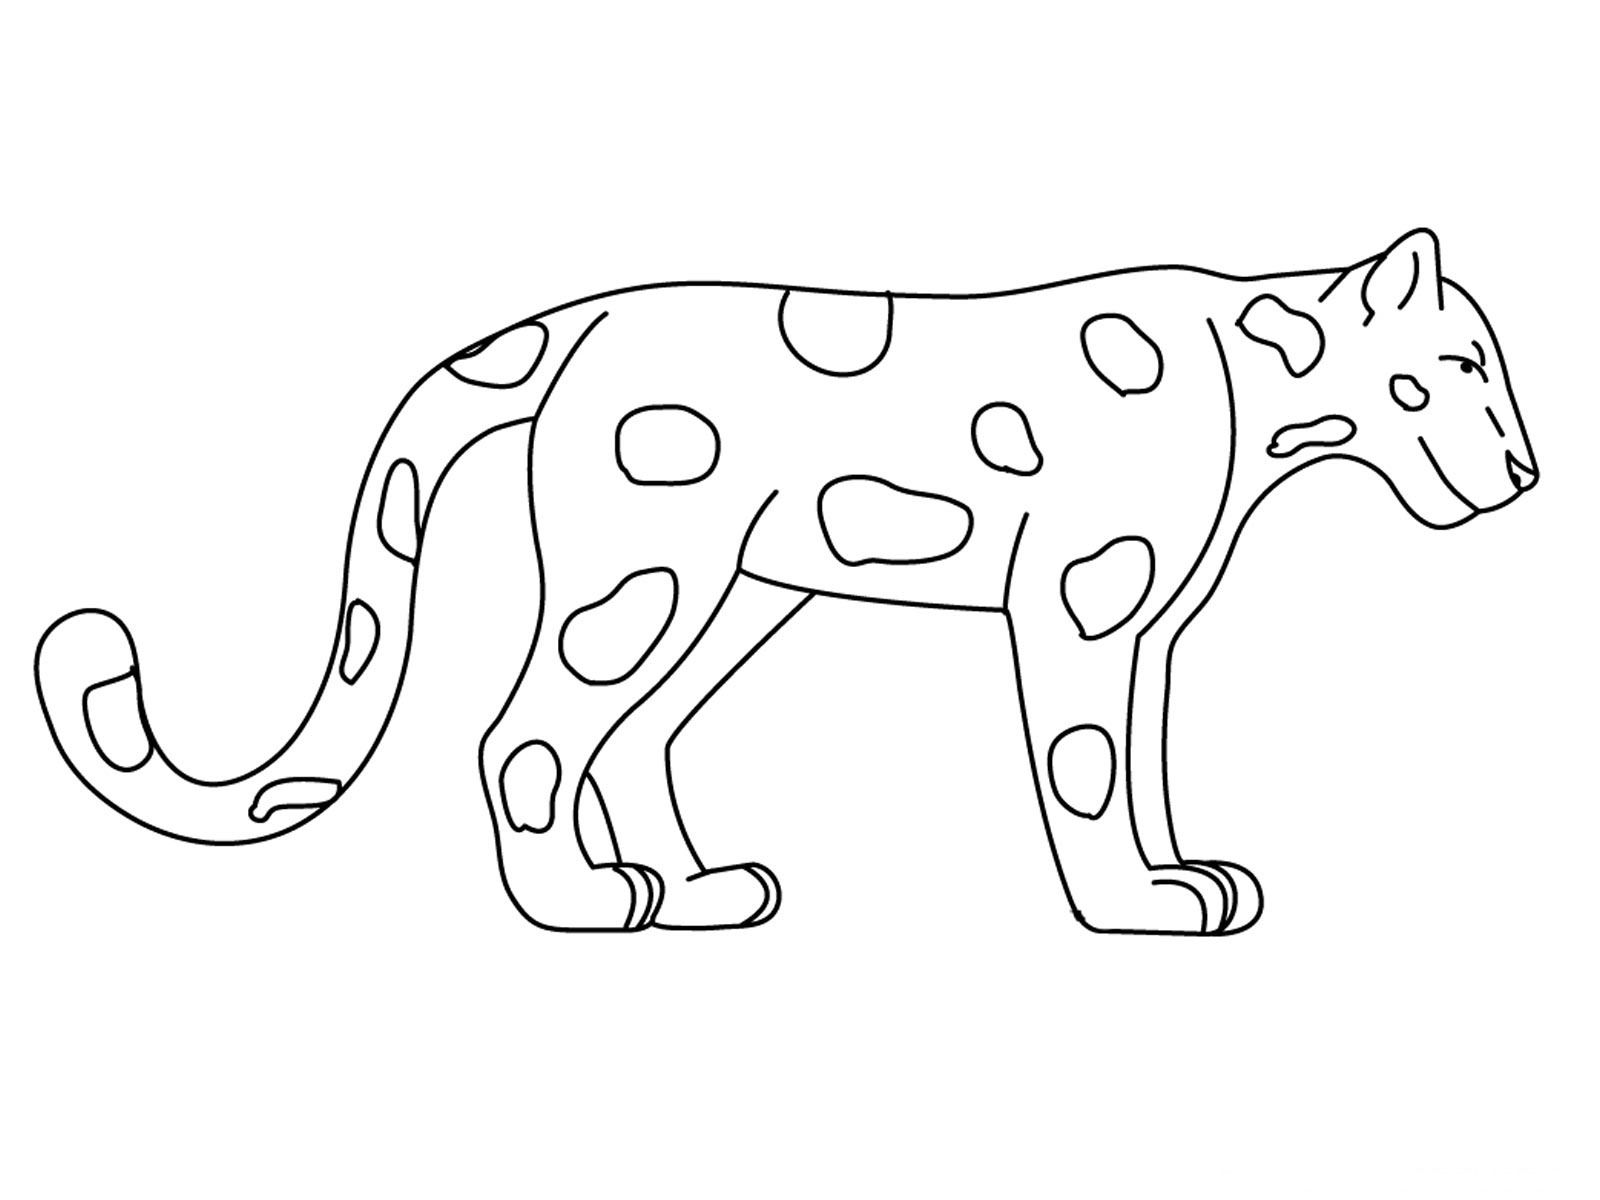 Jaguar Animal Coloring Pages Animal coloring pages